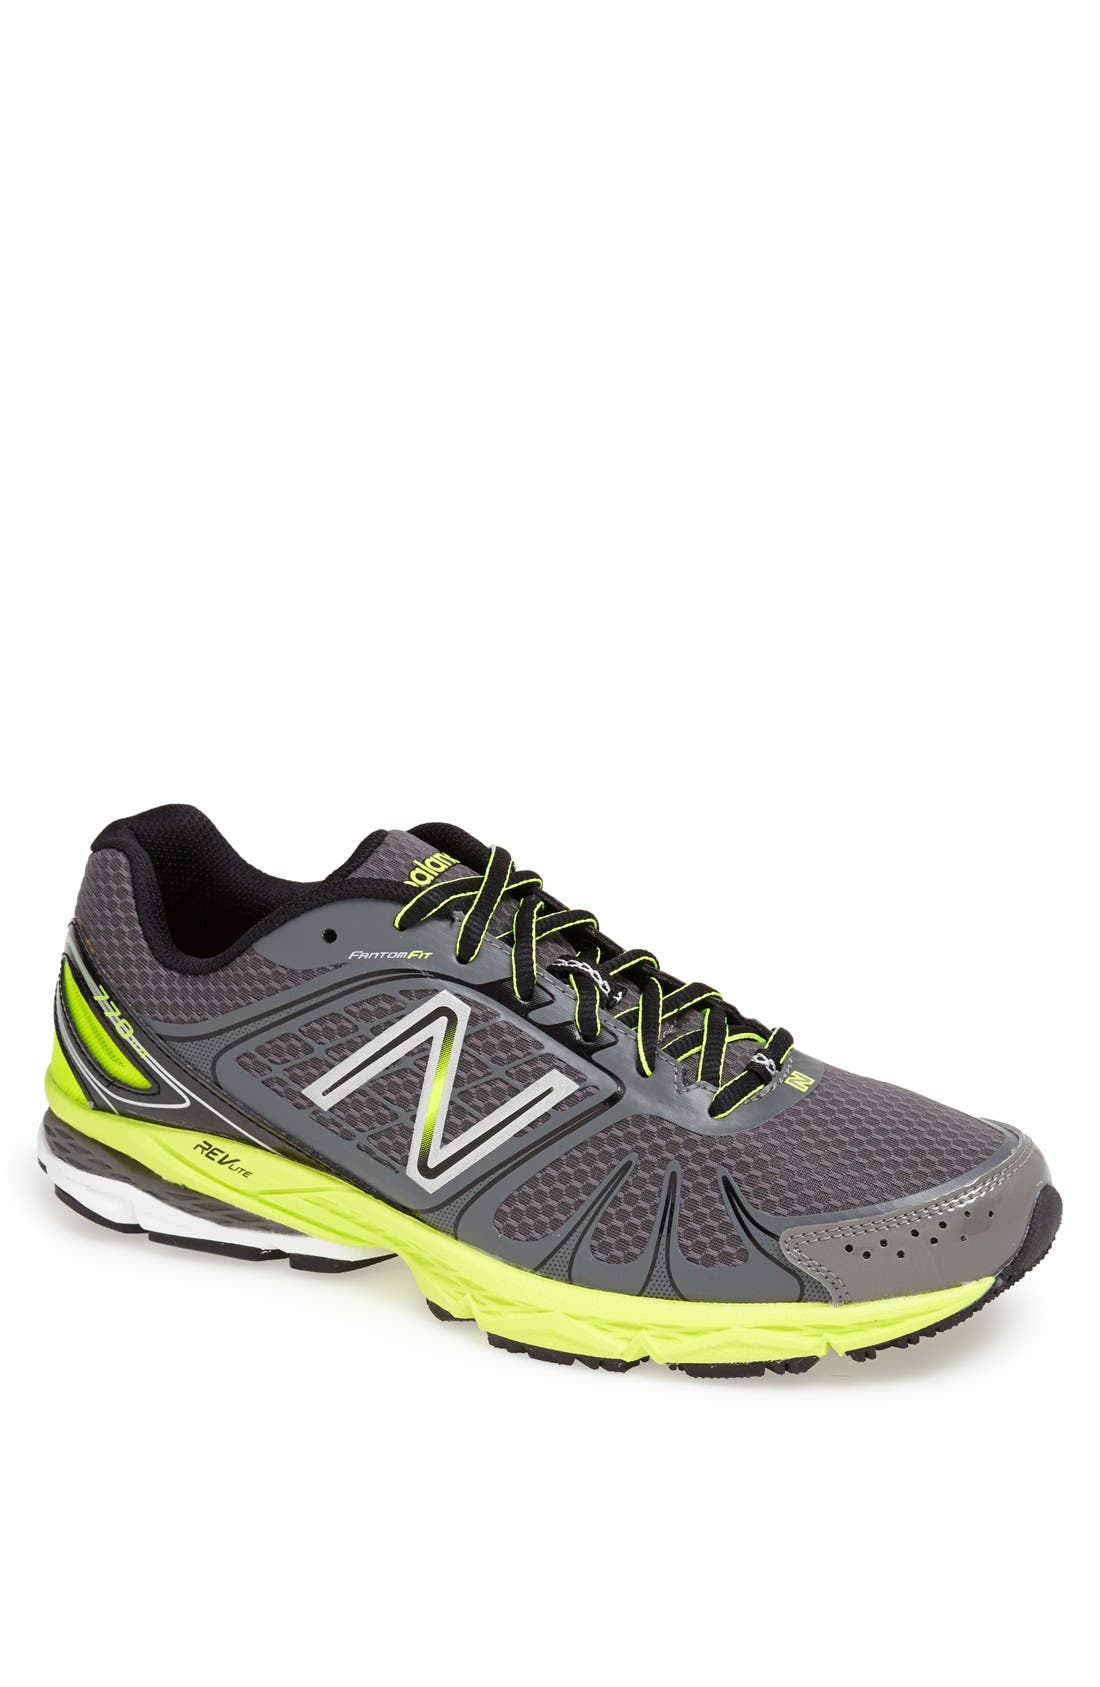 Main Image - New Balance '770' Running Shoe (Men)